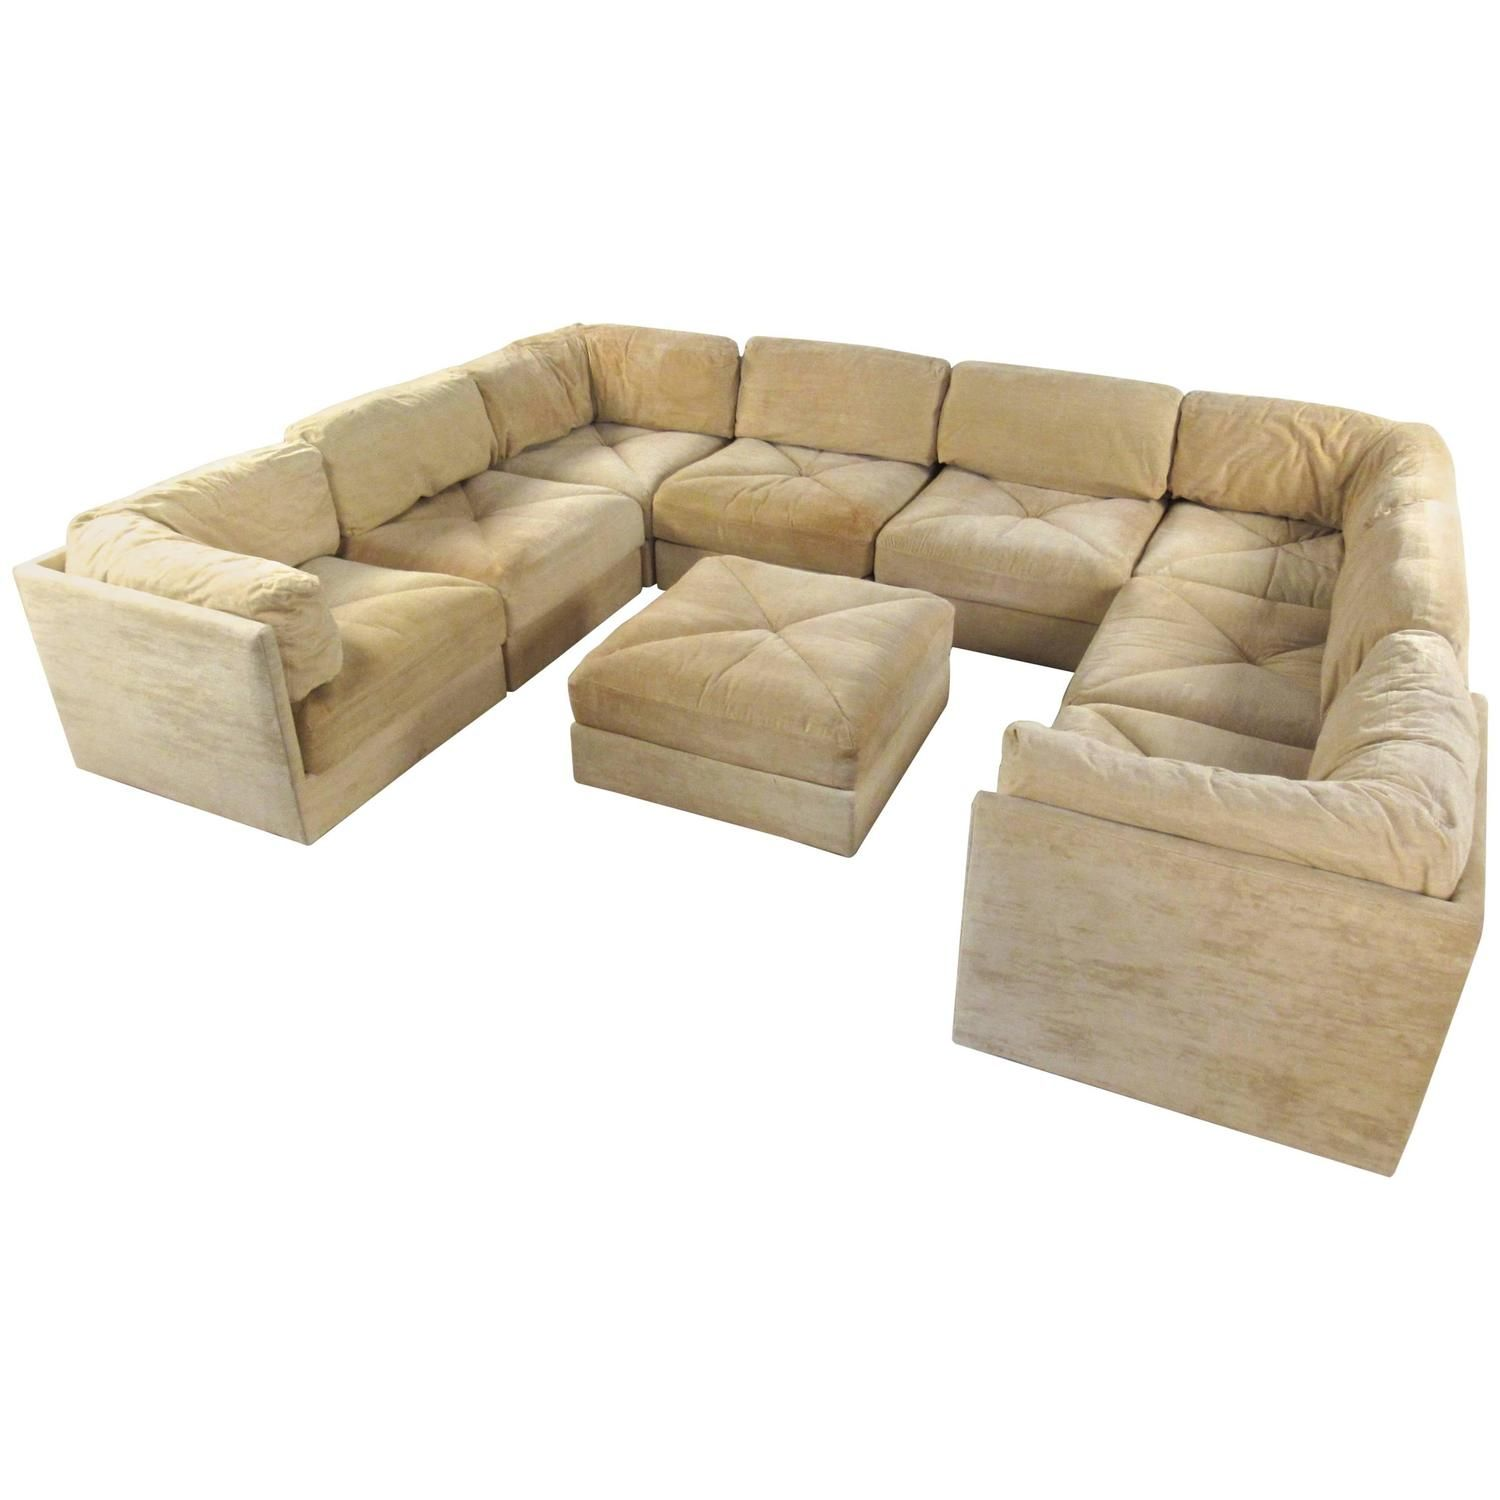 Selig Sectional Sofa with Ottoman Mid Century Modern